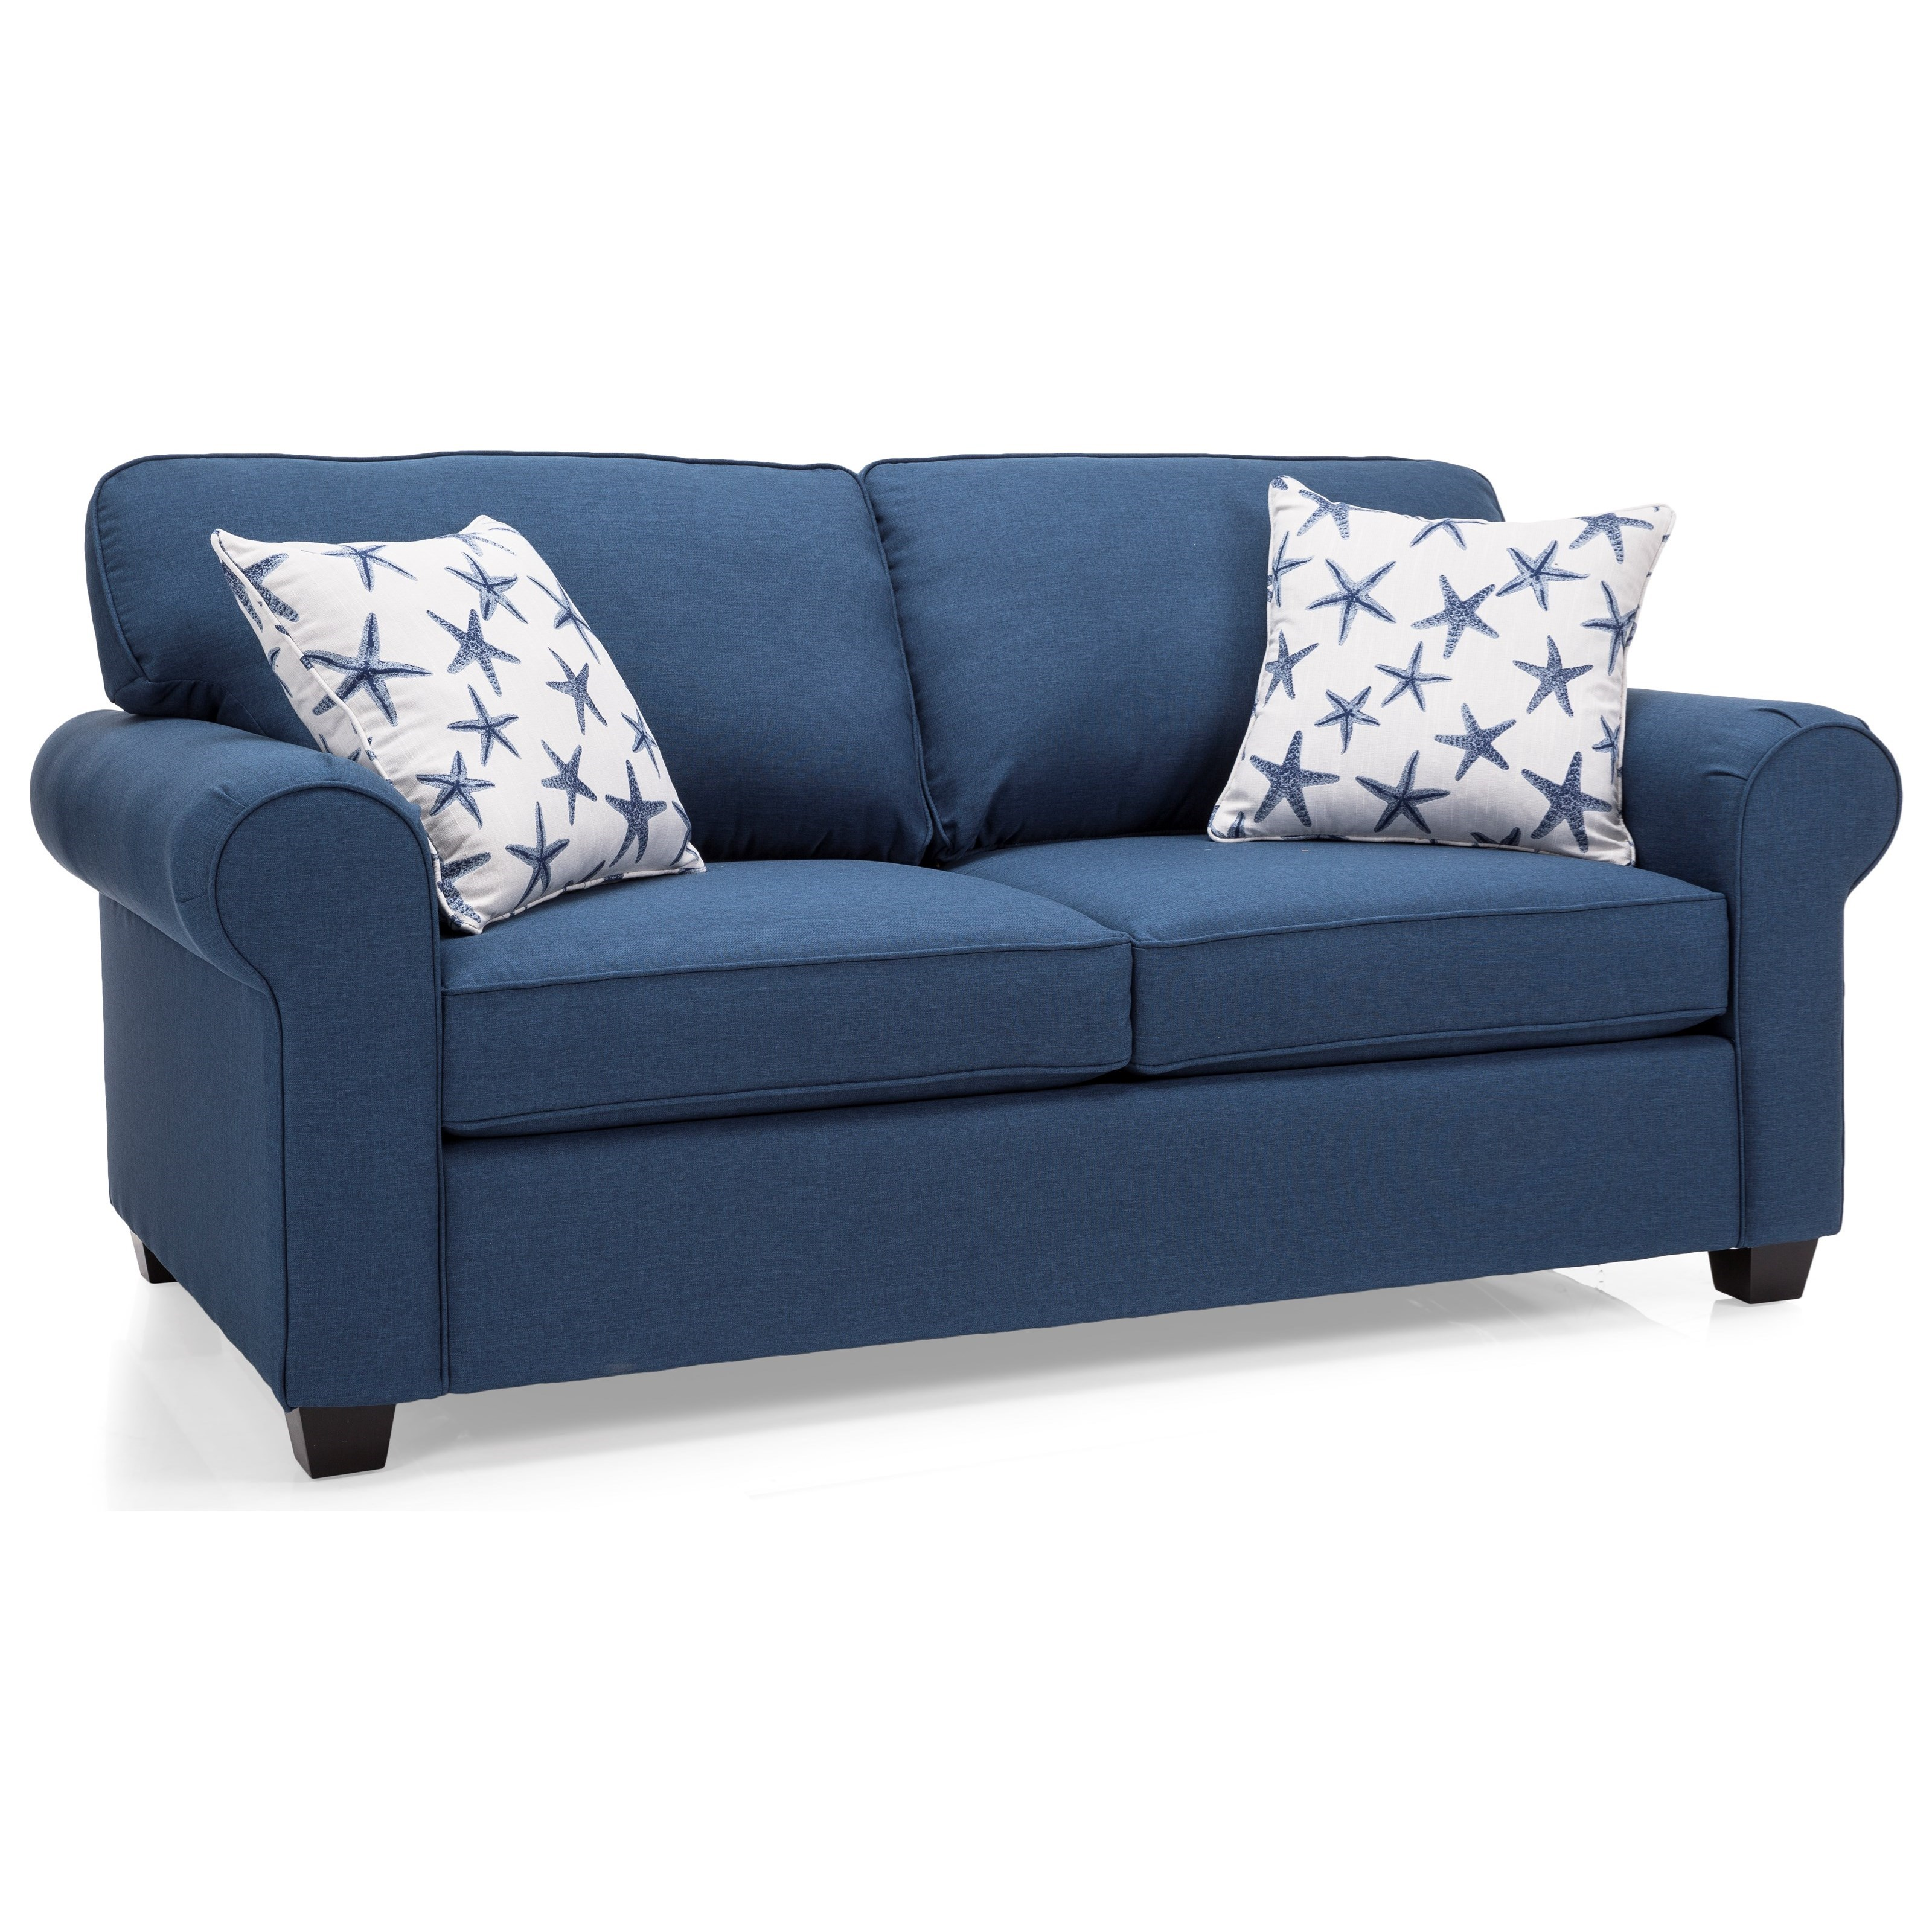 2179 Double Bed Sofa by Decor-Rest at Reid's Furniture